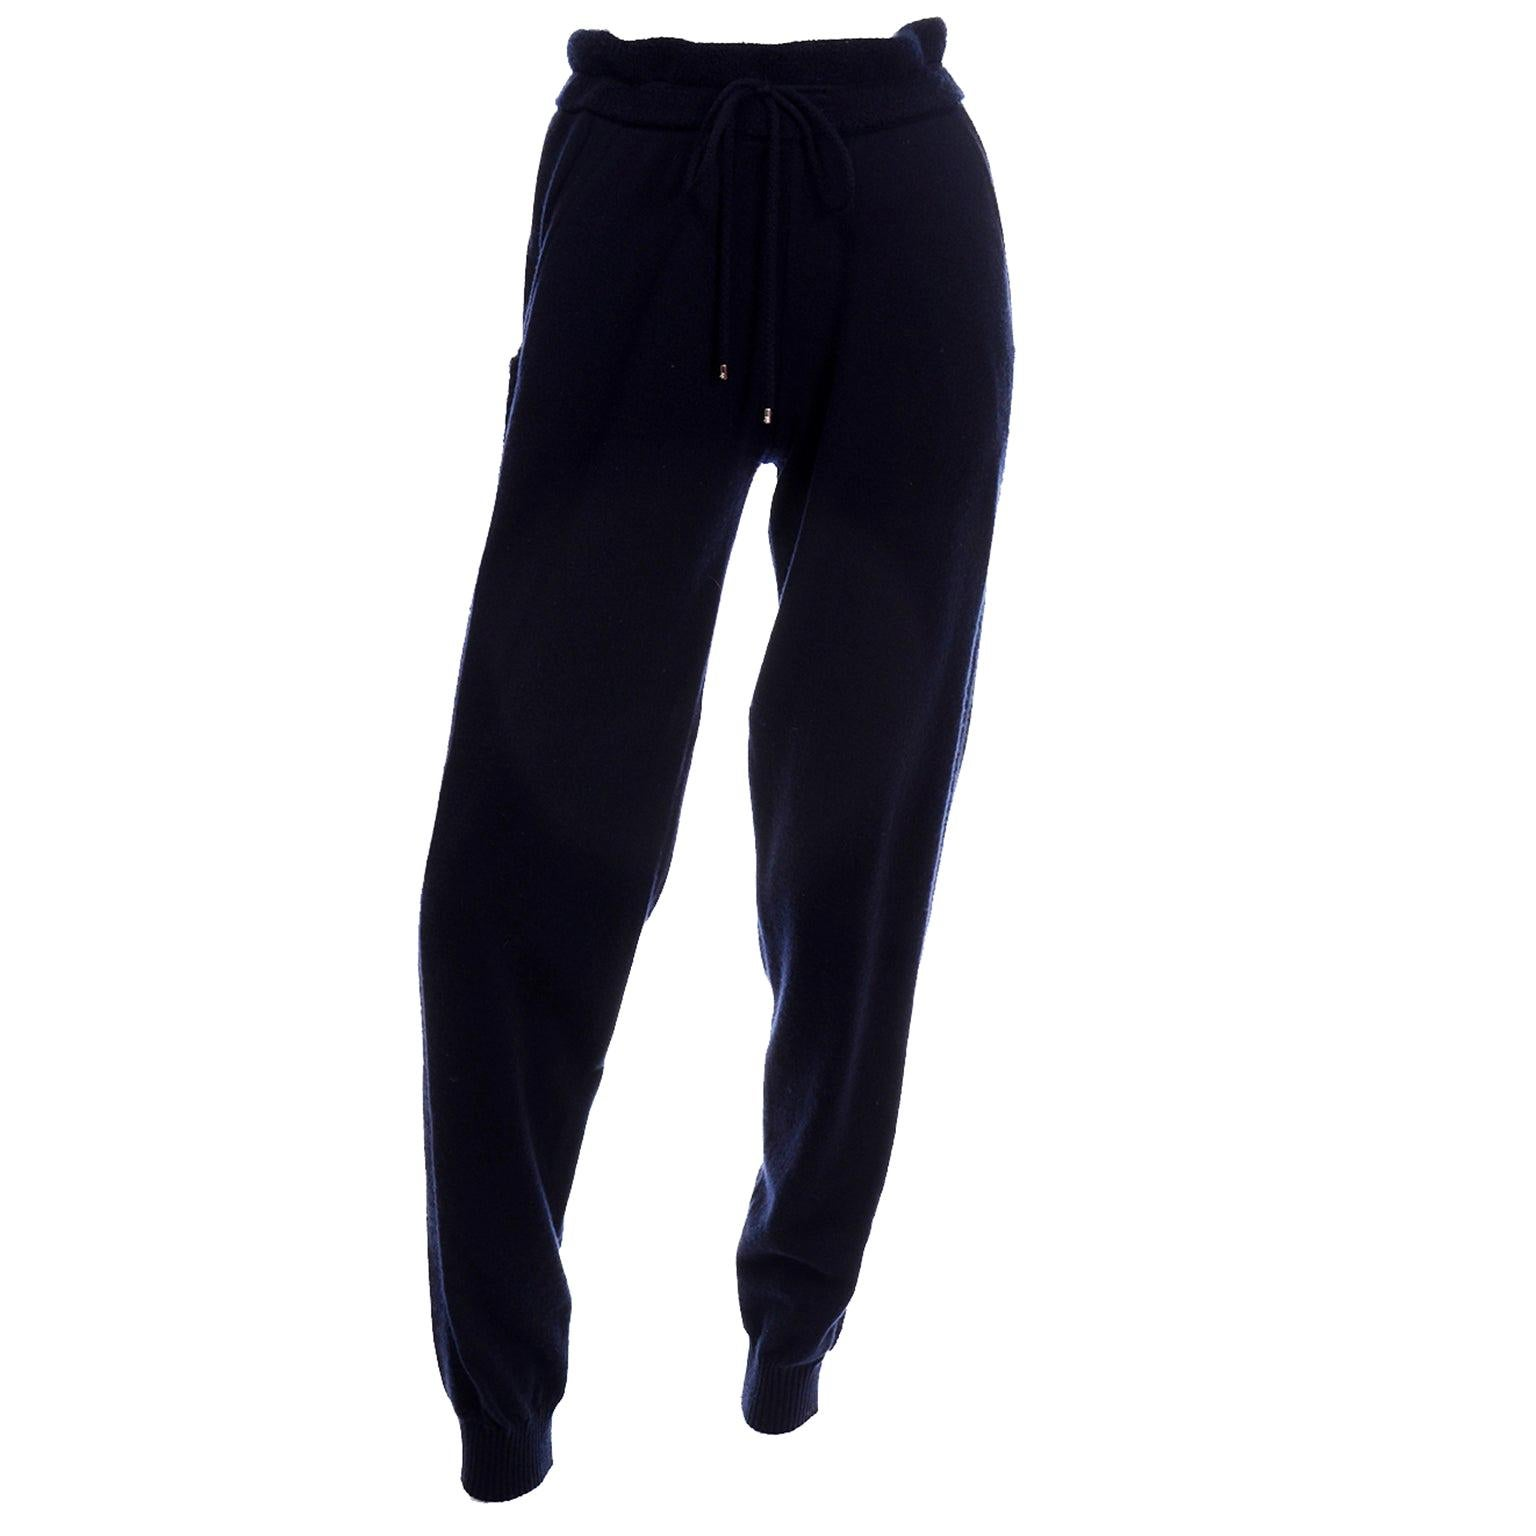 Chanel Midnight Navy Blue Cashmere Jogger Style Drawstring Knit Pants